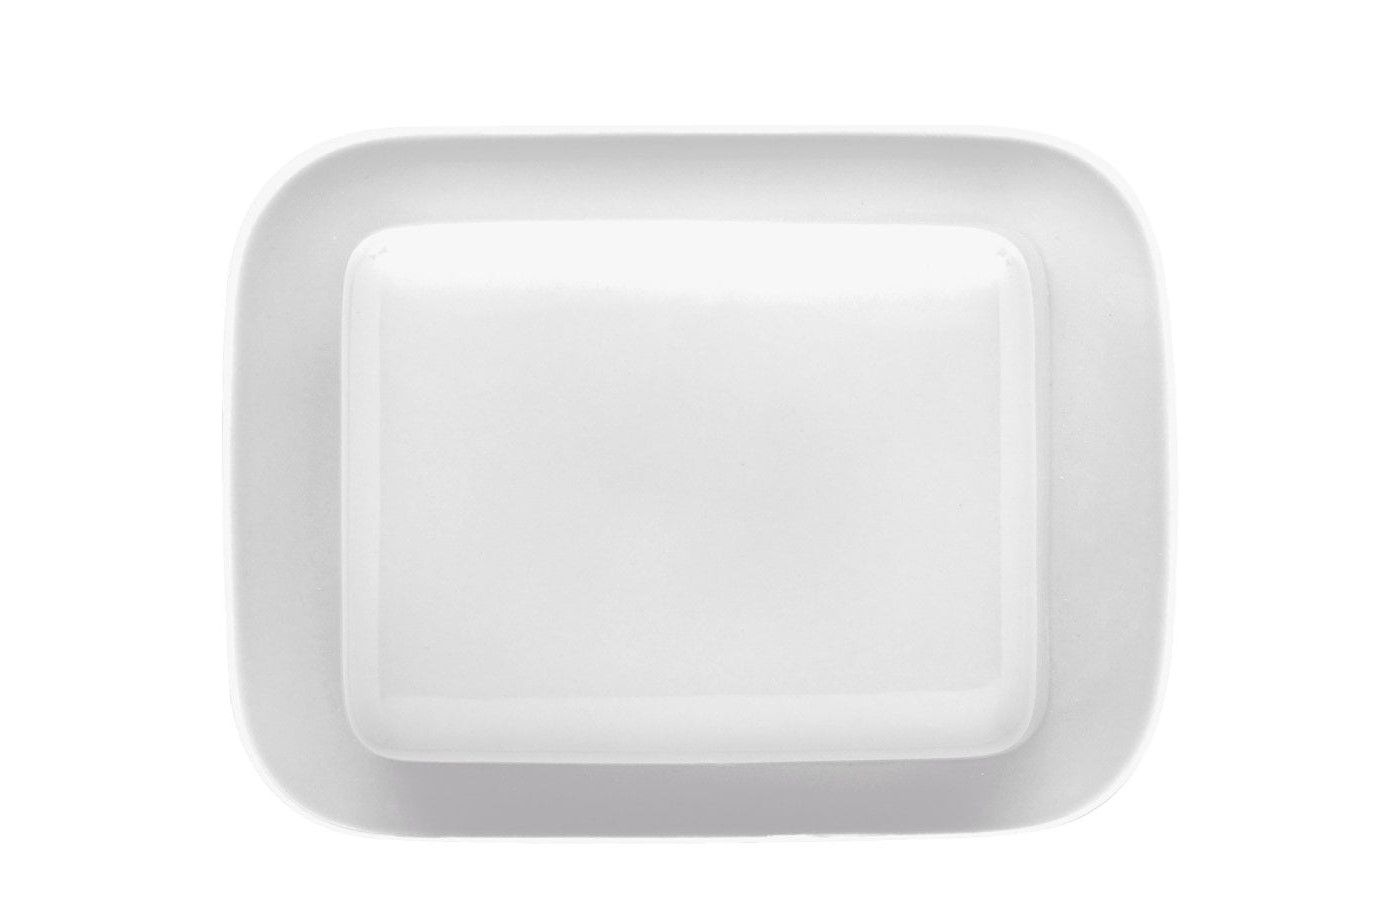 Thomas Sunny Day - White Butter Dish + Lid thumb 1